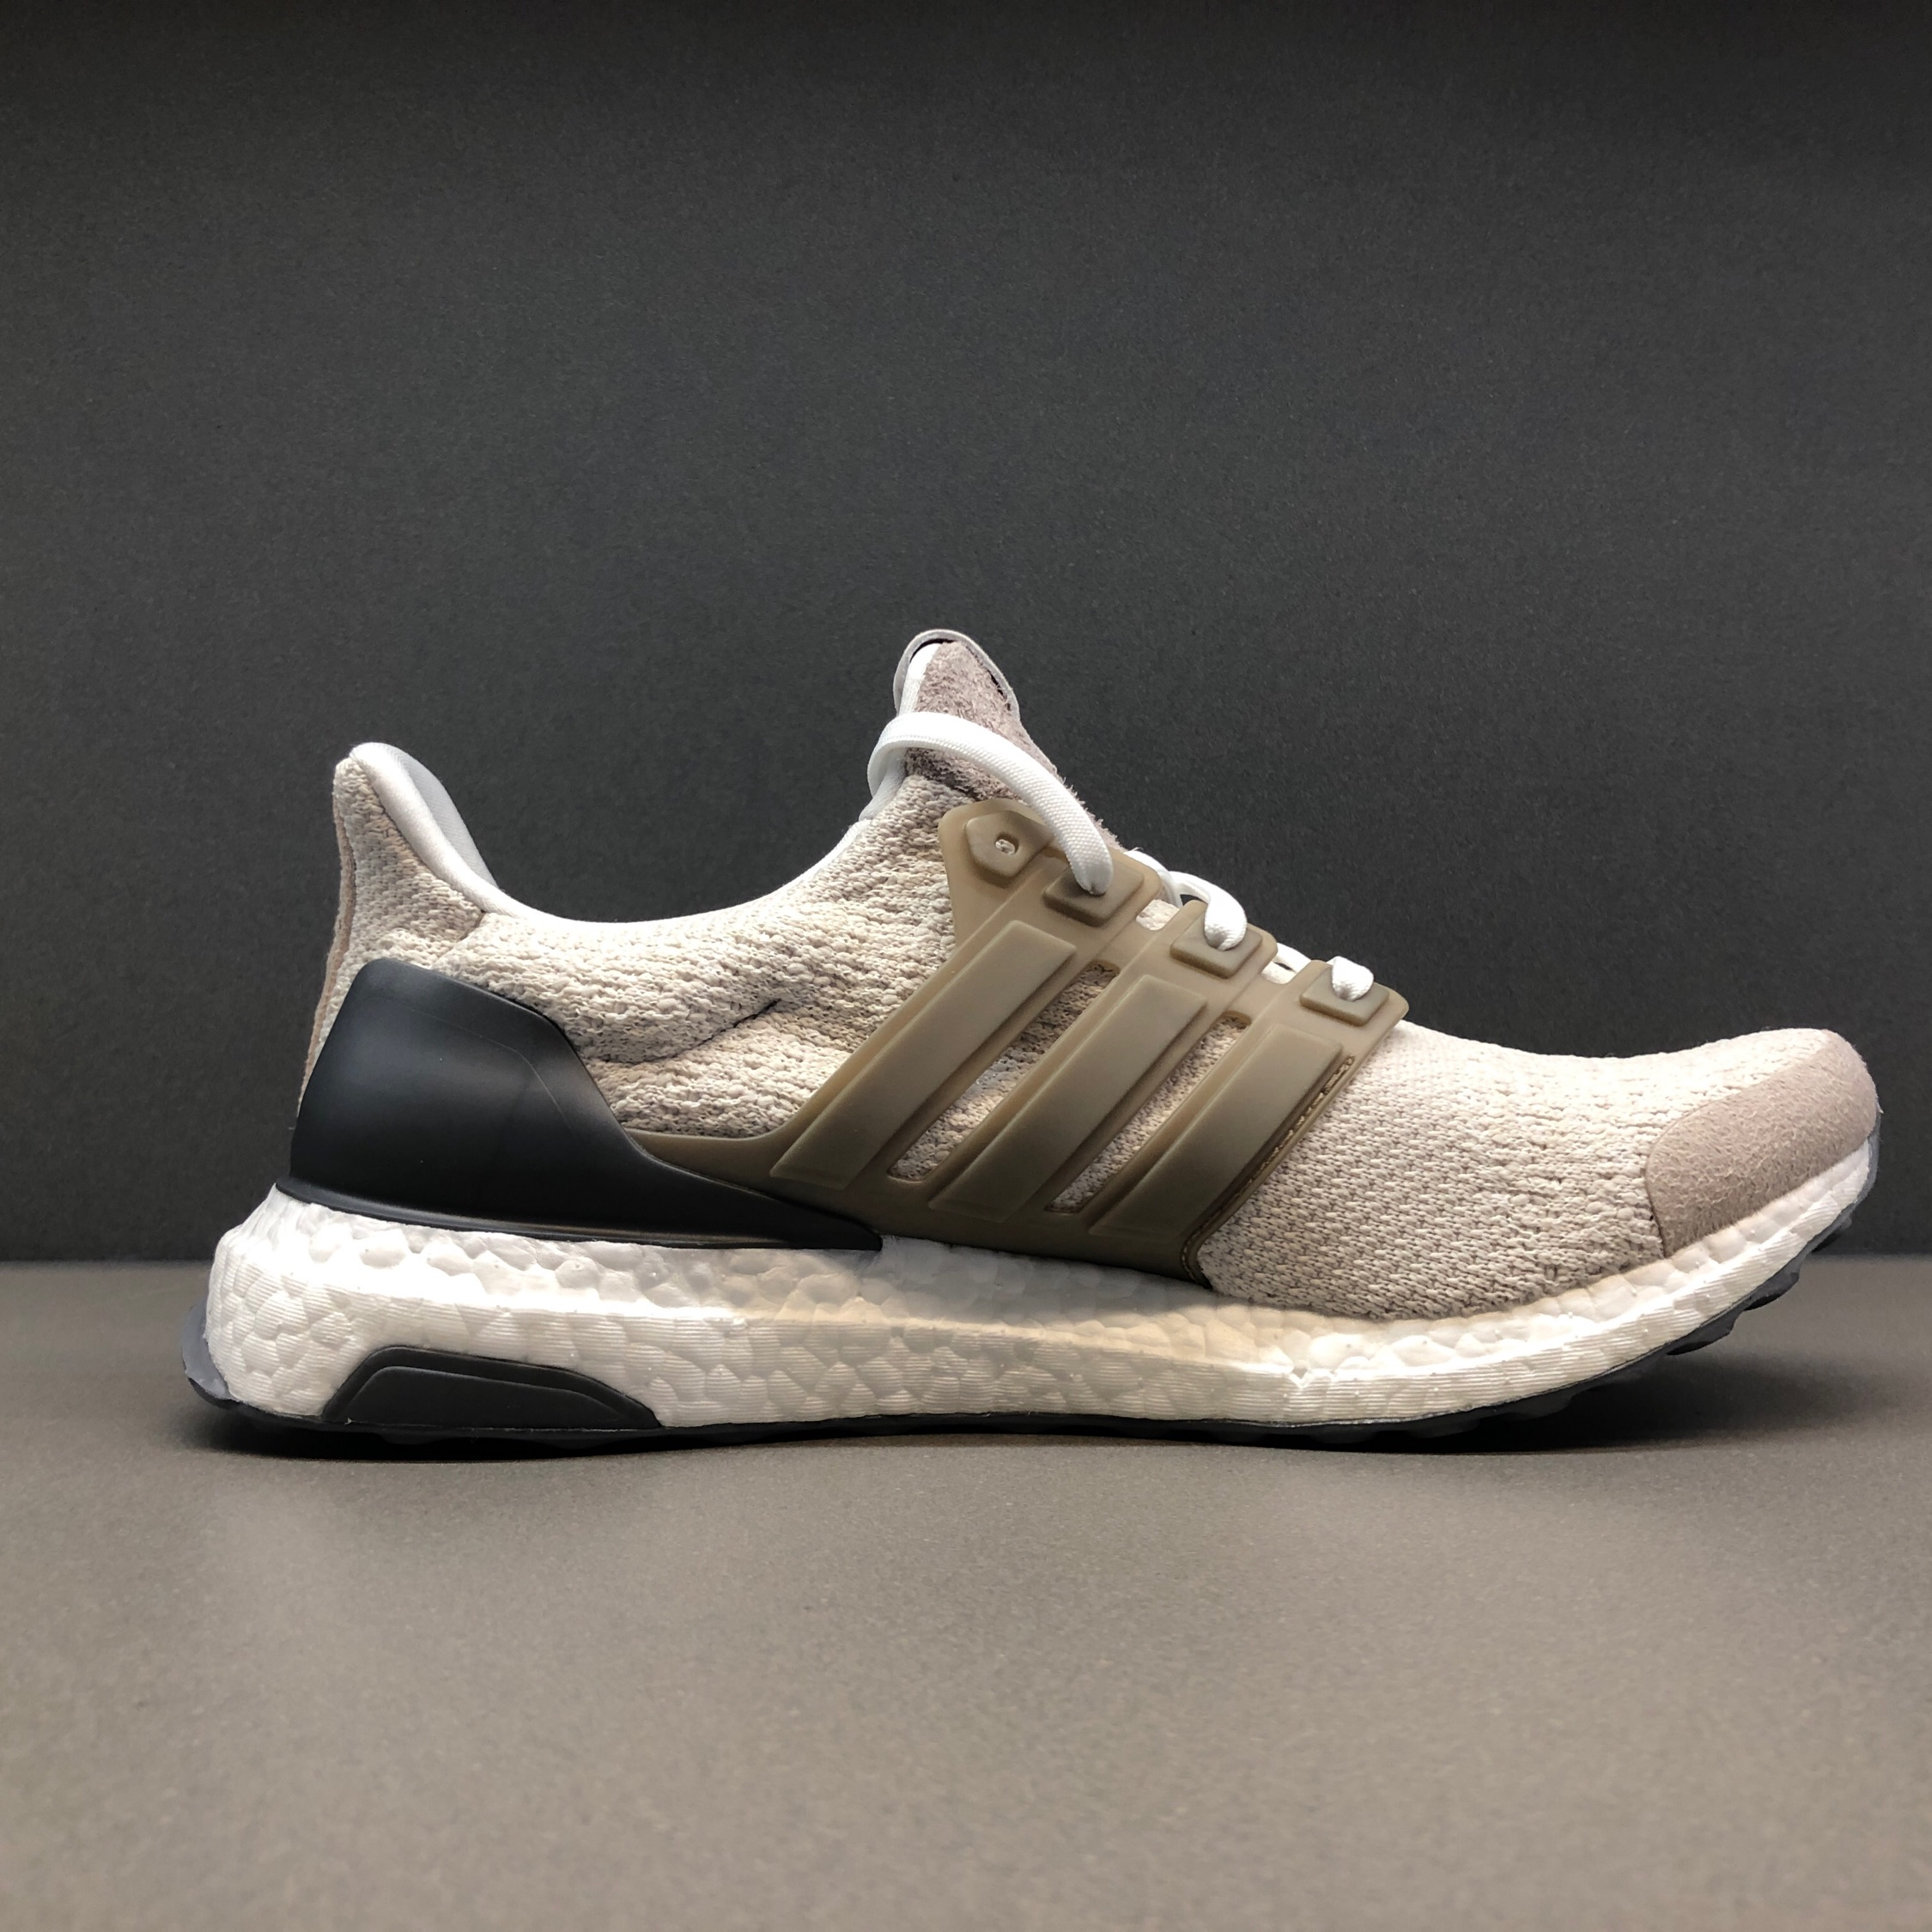 100% authentic 3f587 48520 Adidas Ultra Boost Lux Sneakersnstuff Socialstatus